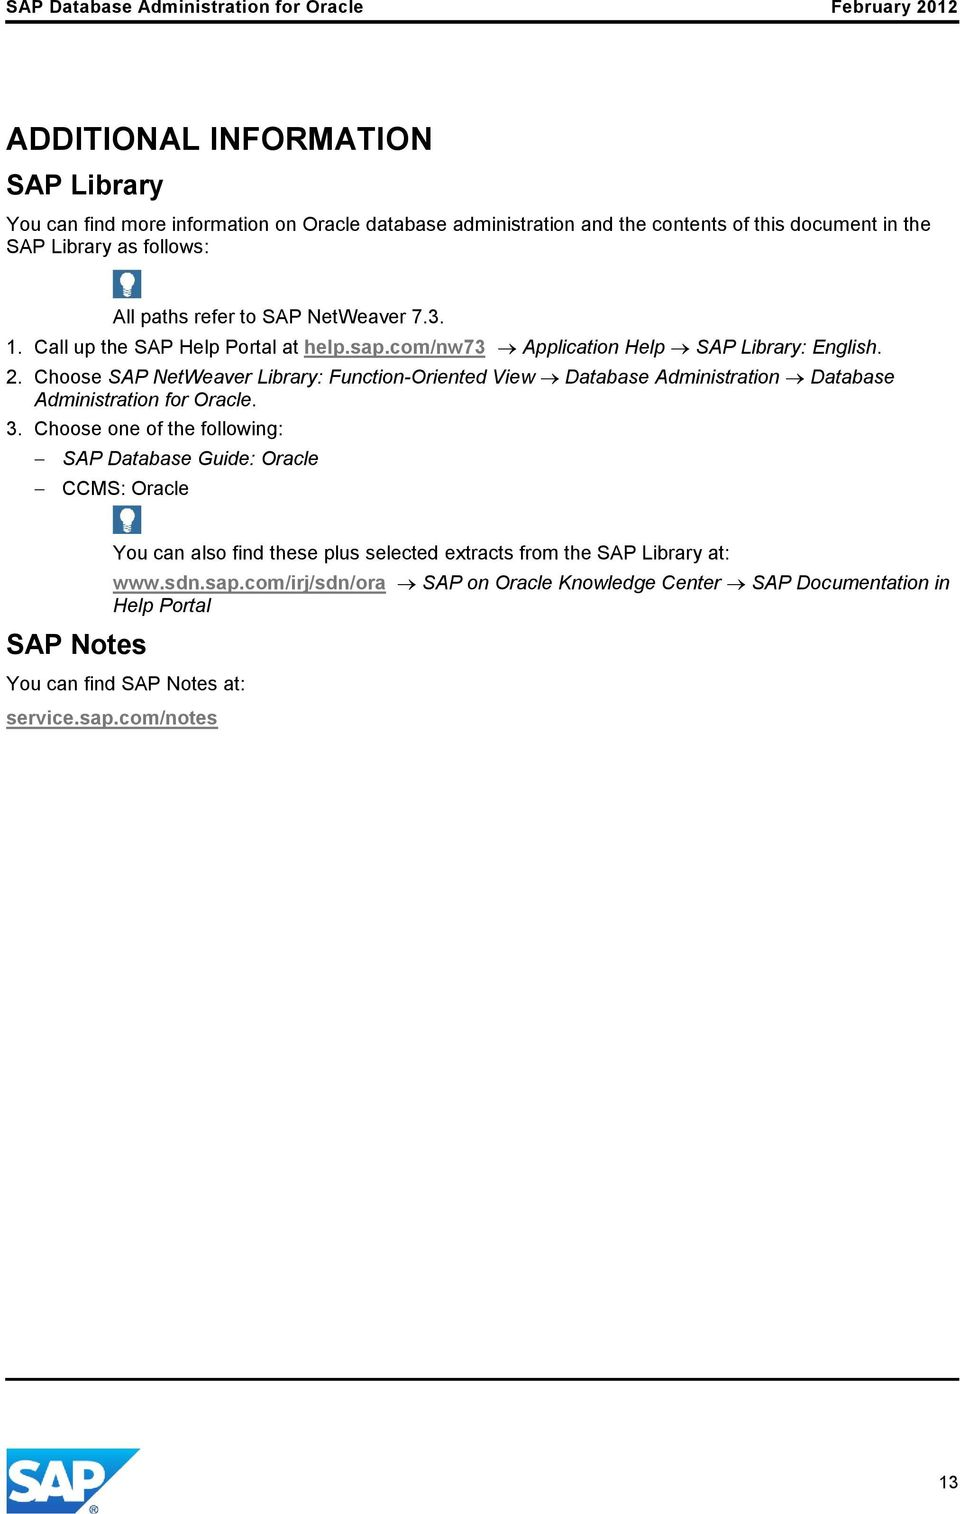 Choose SAP NetWeaver Library: Function-Oriented View Database Administration Database Administration for Oracle. 3.